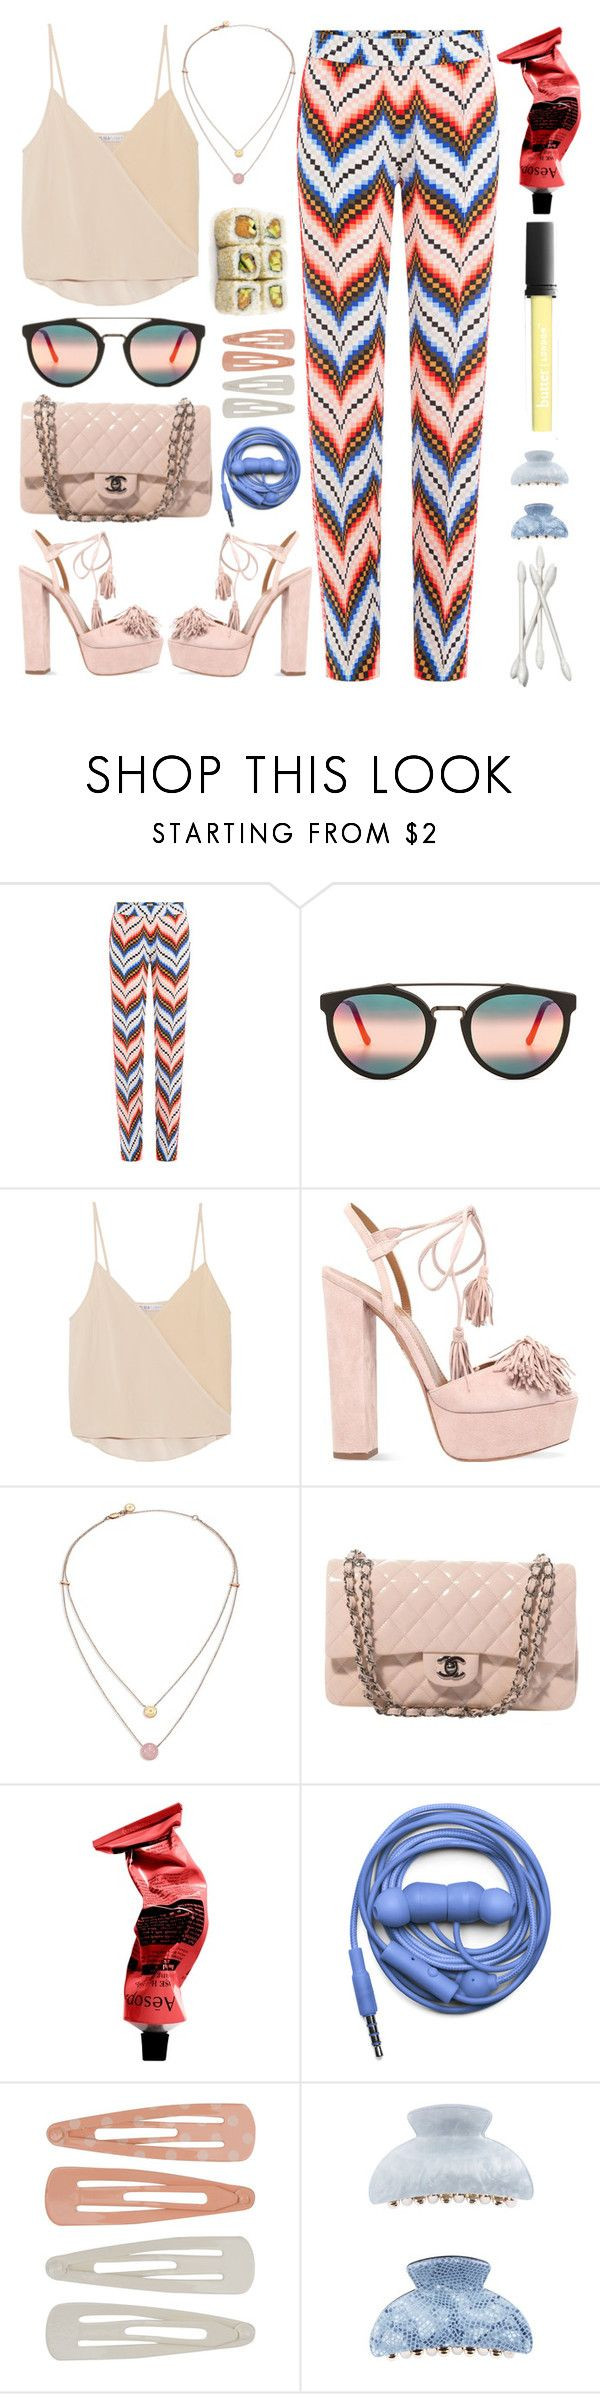 """""""Jive"""" by finding-0riginality ❤ liked on Polyvore featuring Kenzo, RetroSuperFuture, Chelsea Flower, Aquazzura, Michael Kors, Chanel, Aesop, Urbanears, Forever 21 and Butter London"""